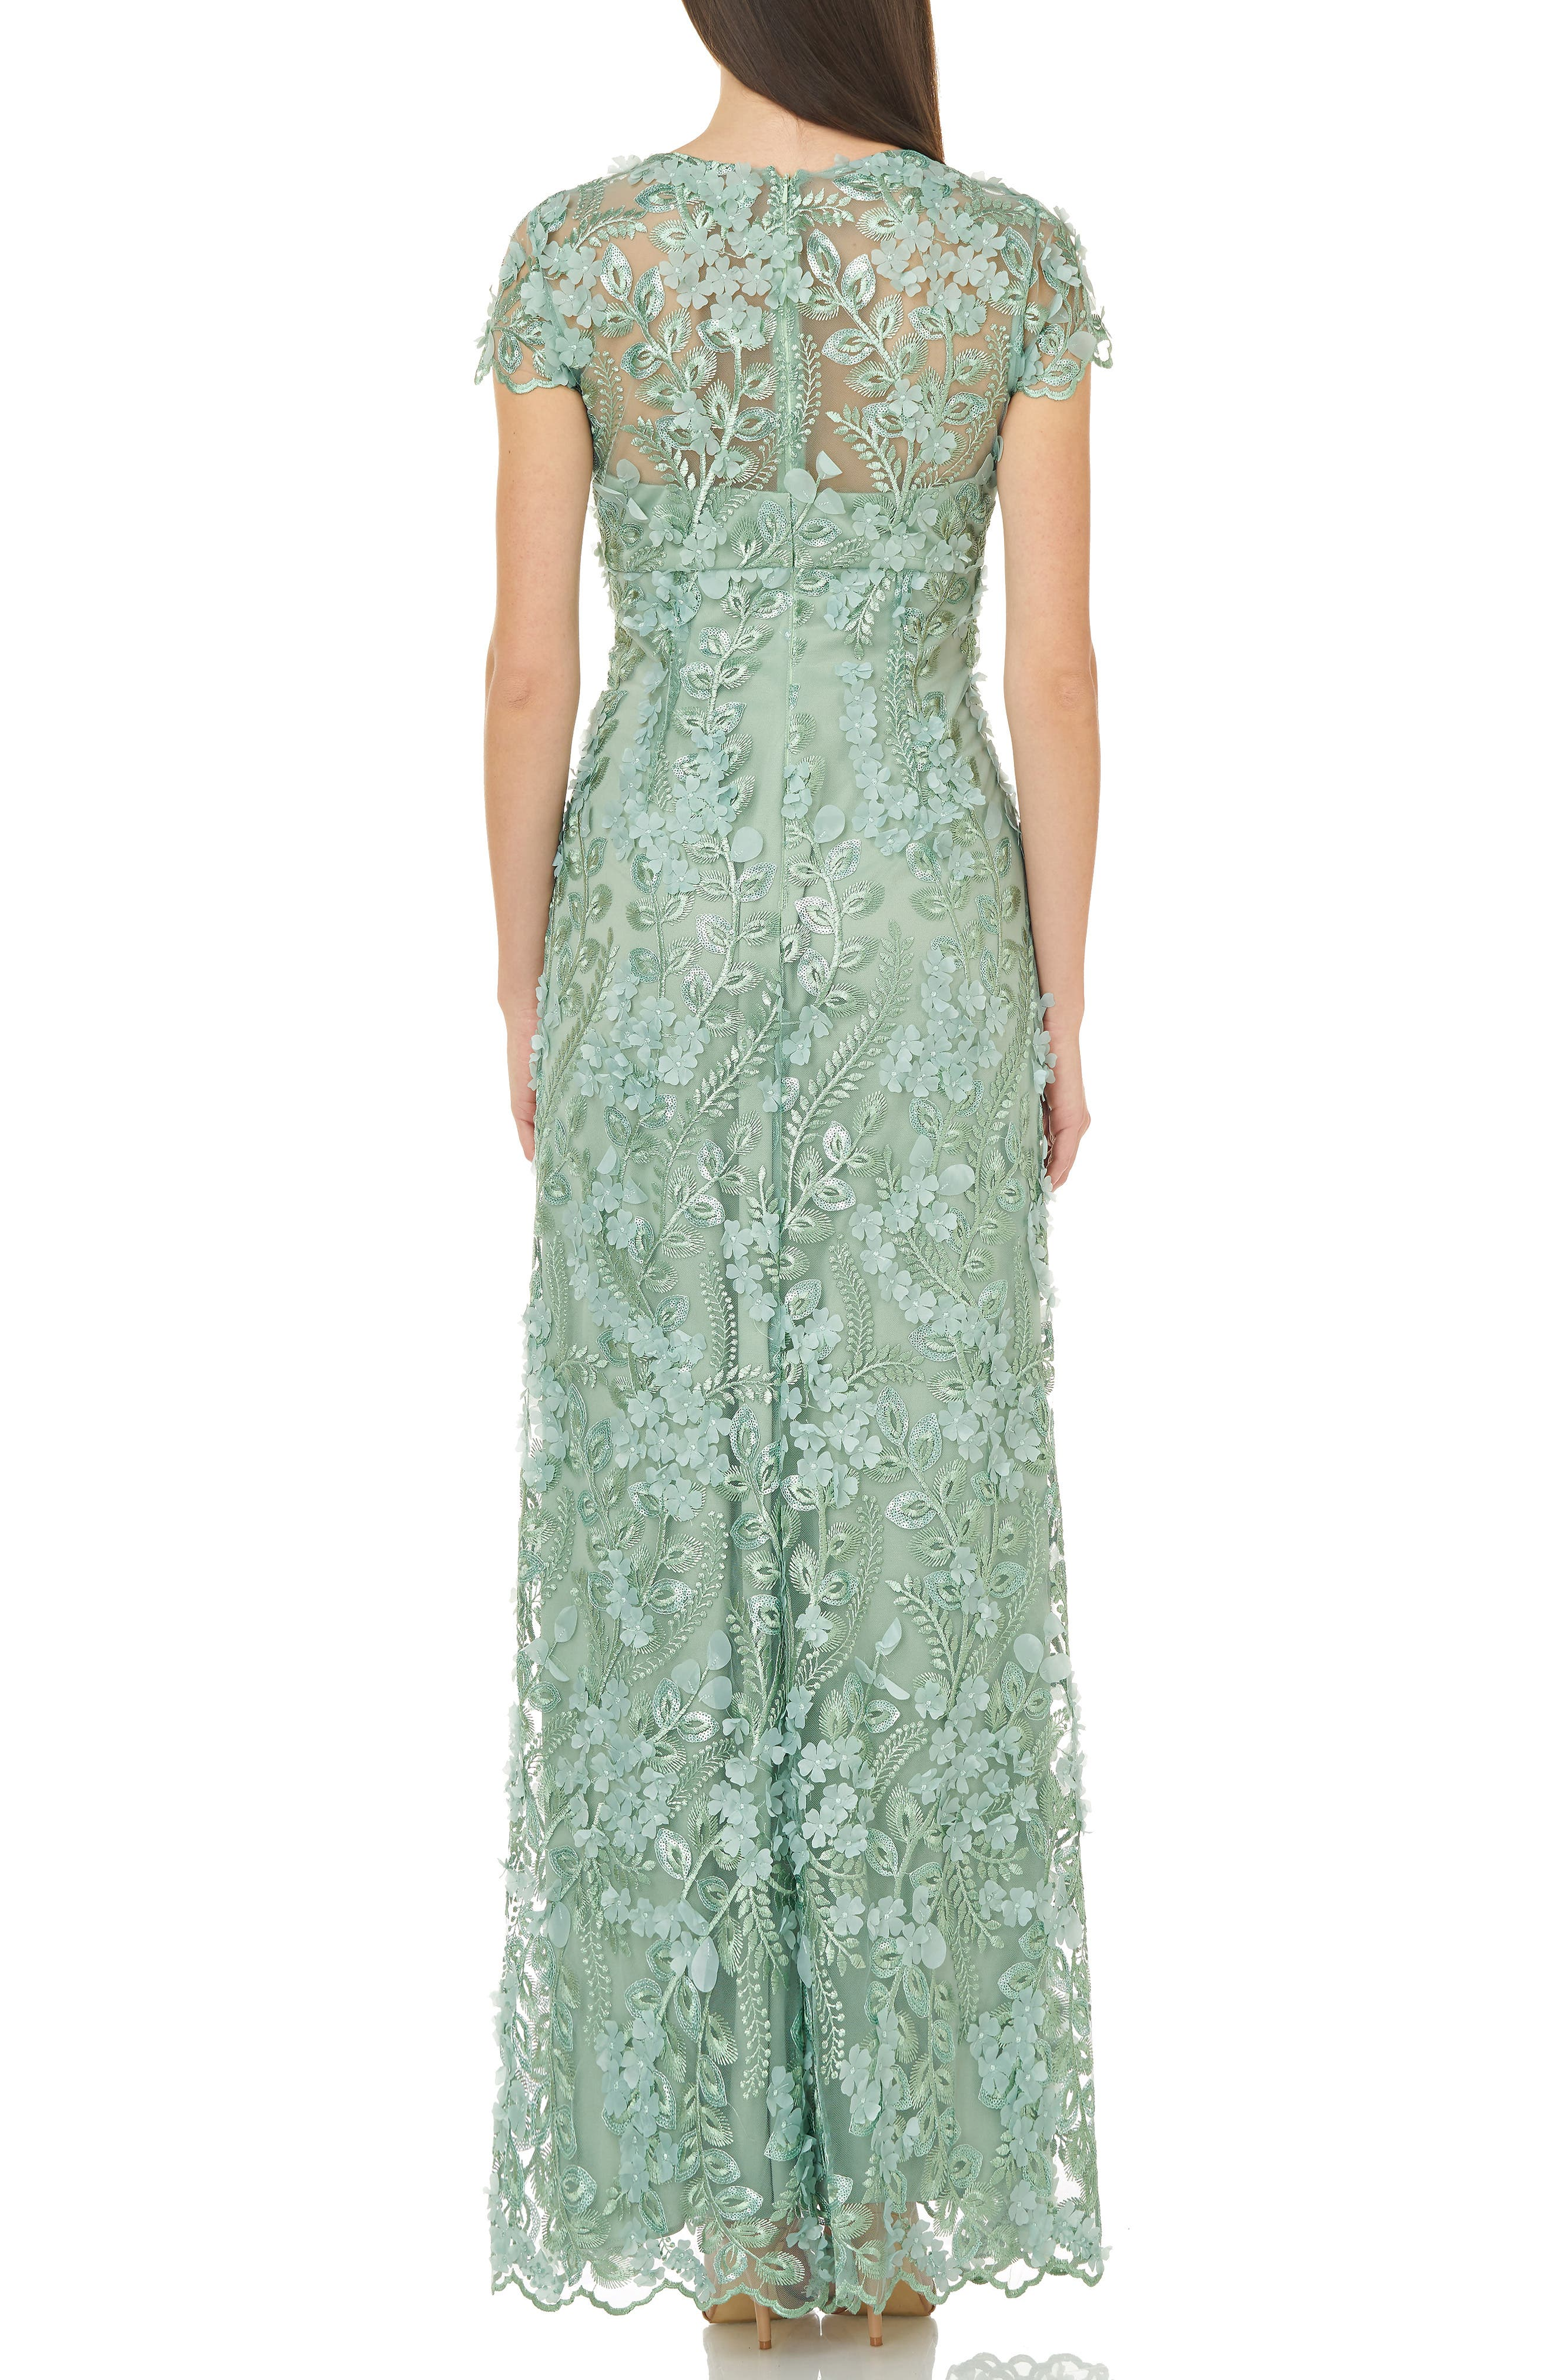 CARMEN MARC VALVO INFUSION, Petals Embellished Gown, Alternate thumbnail 2, color, CELADON